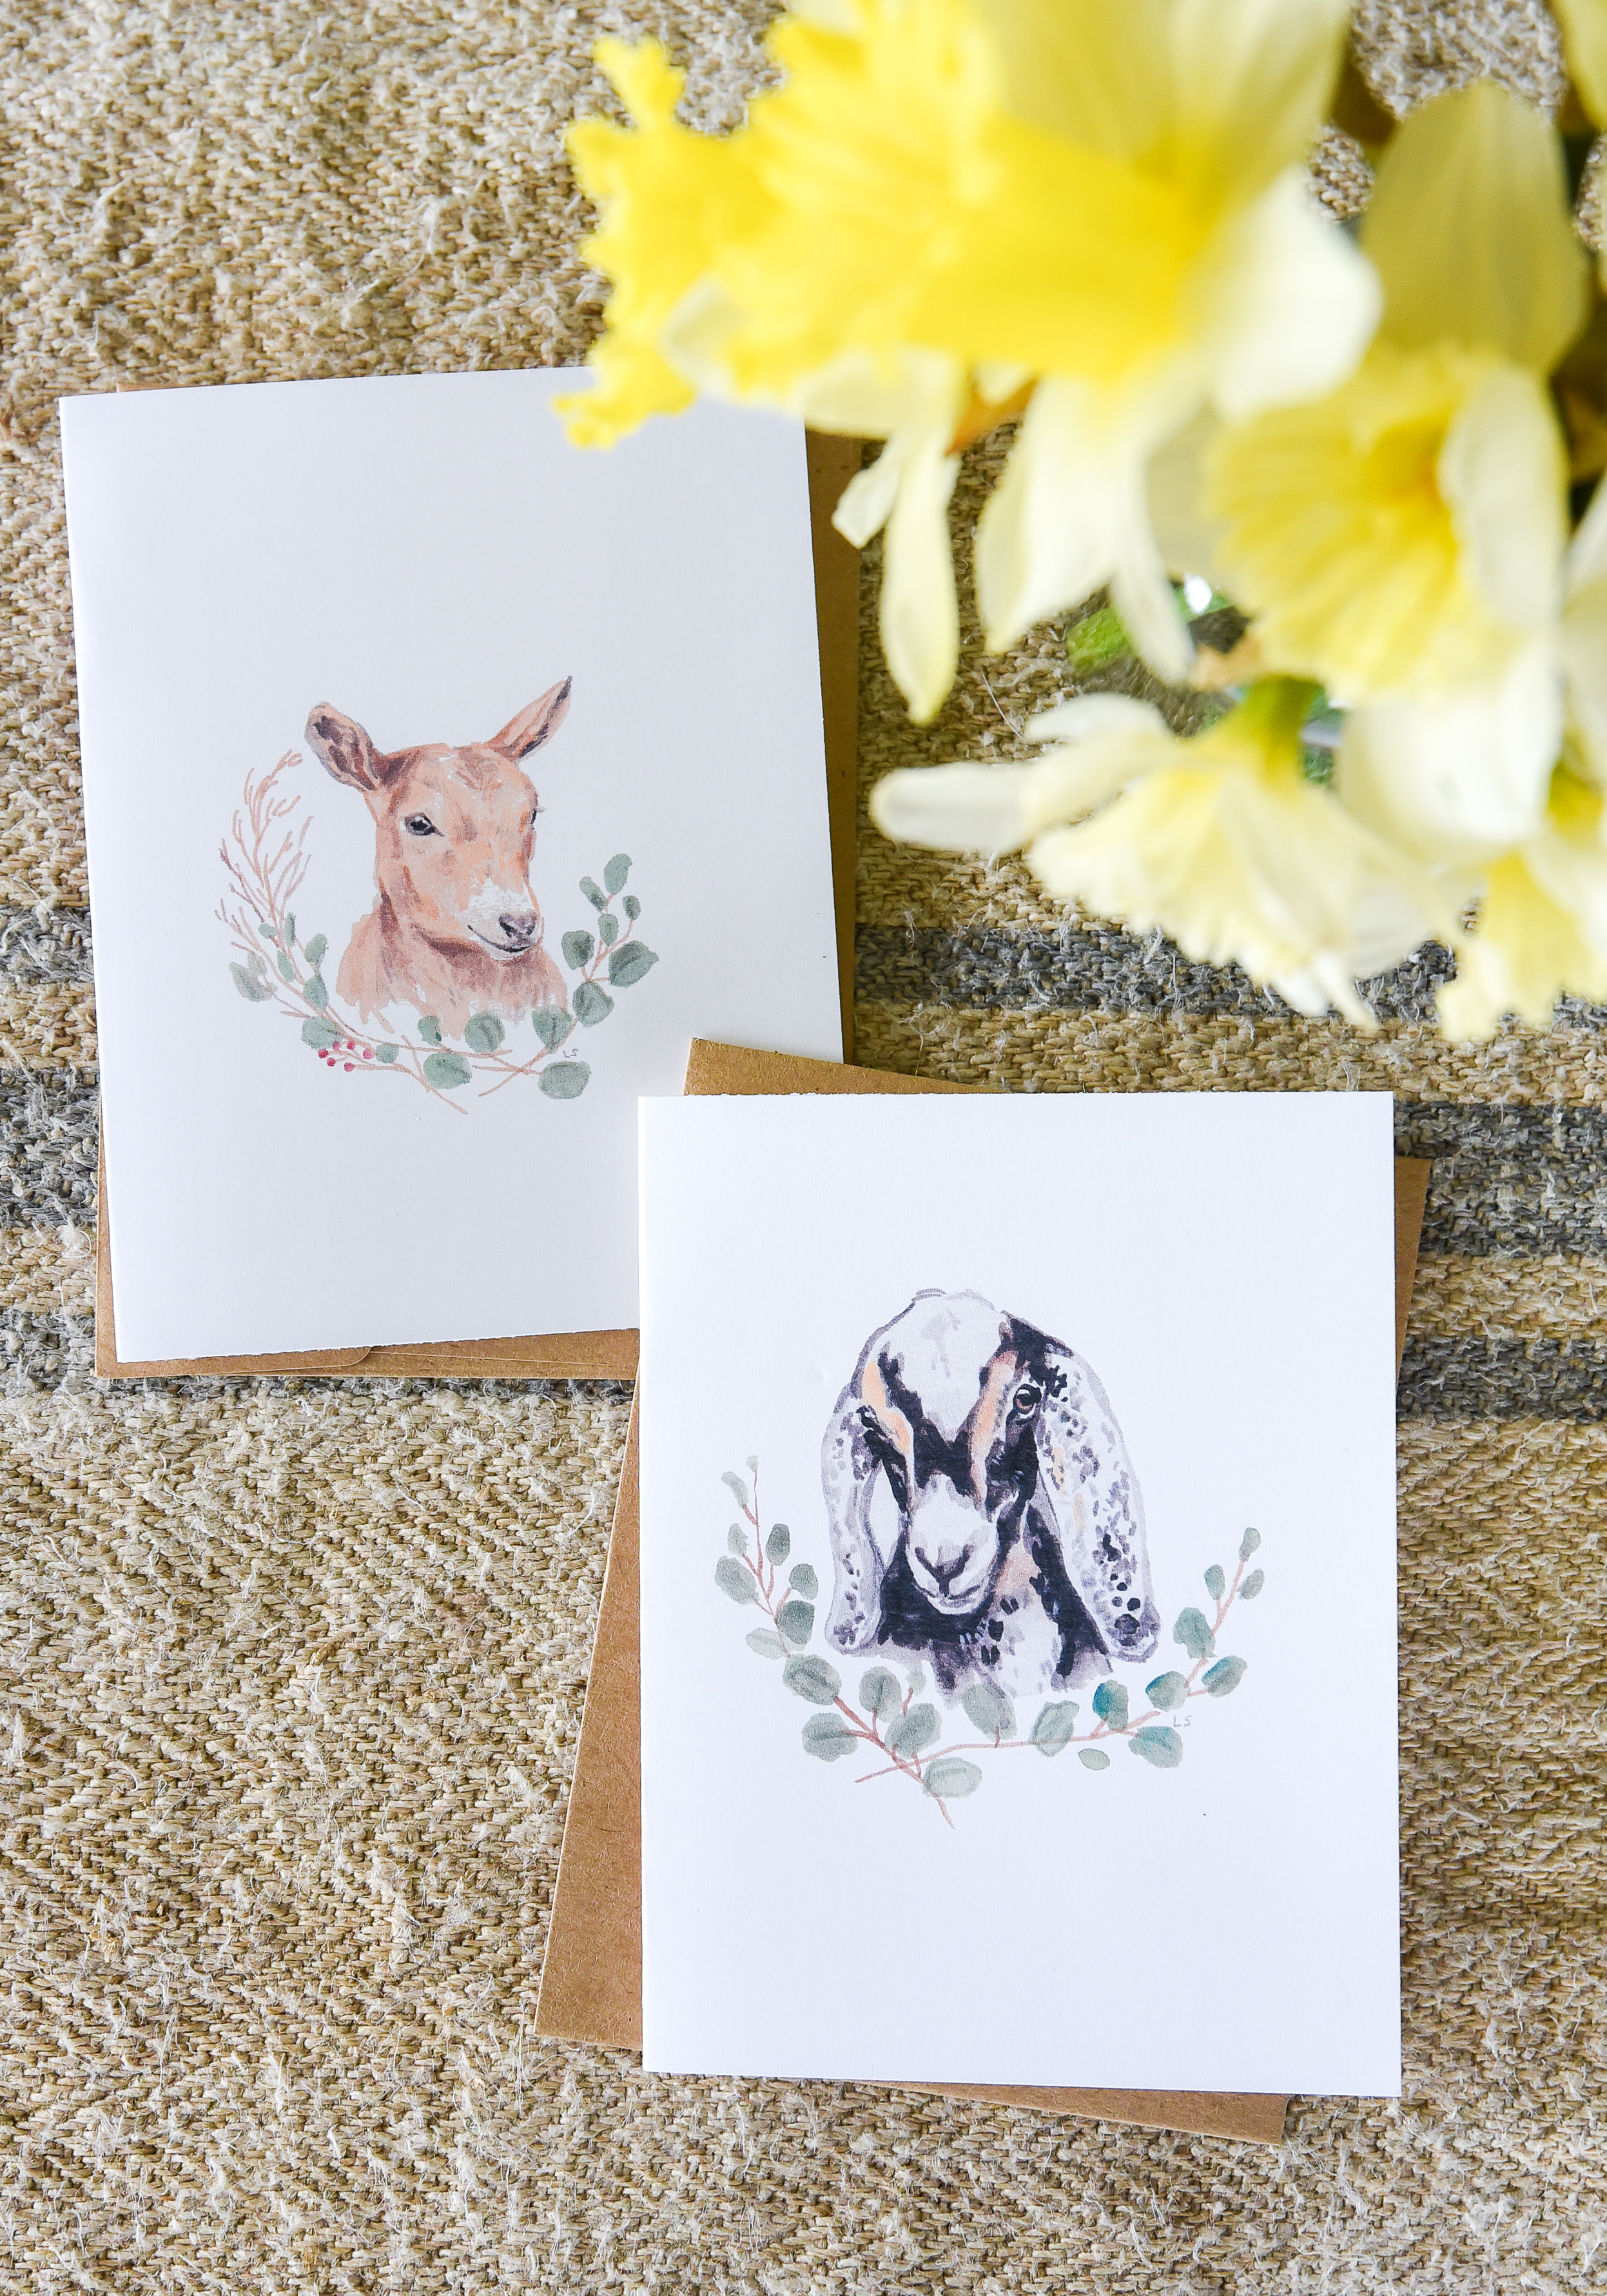 These free printable cards are perfect for Easter or spring! Print these free goat greeting cards for free! #printablecards #eastercards #springprintable